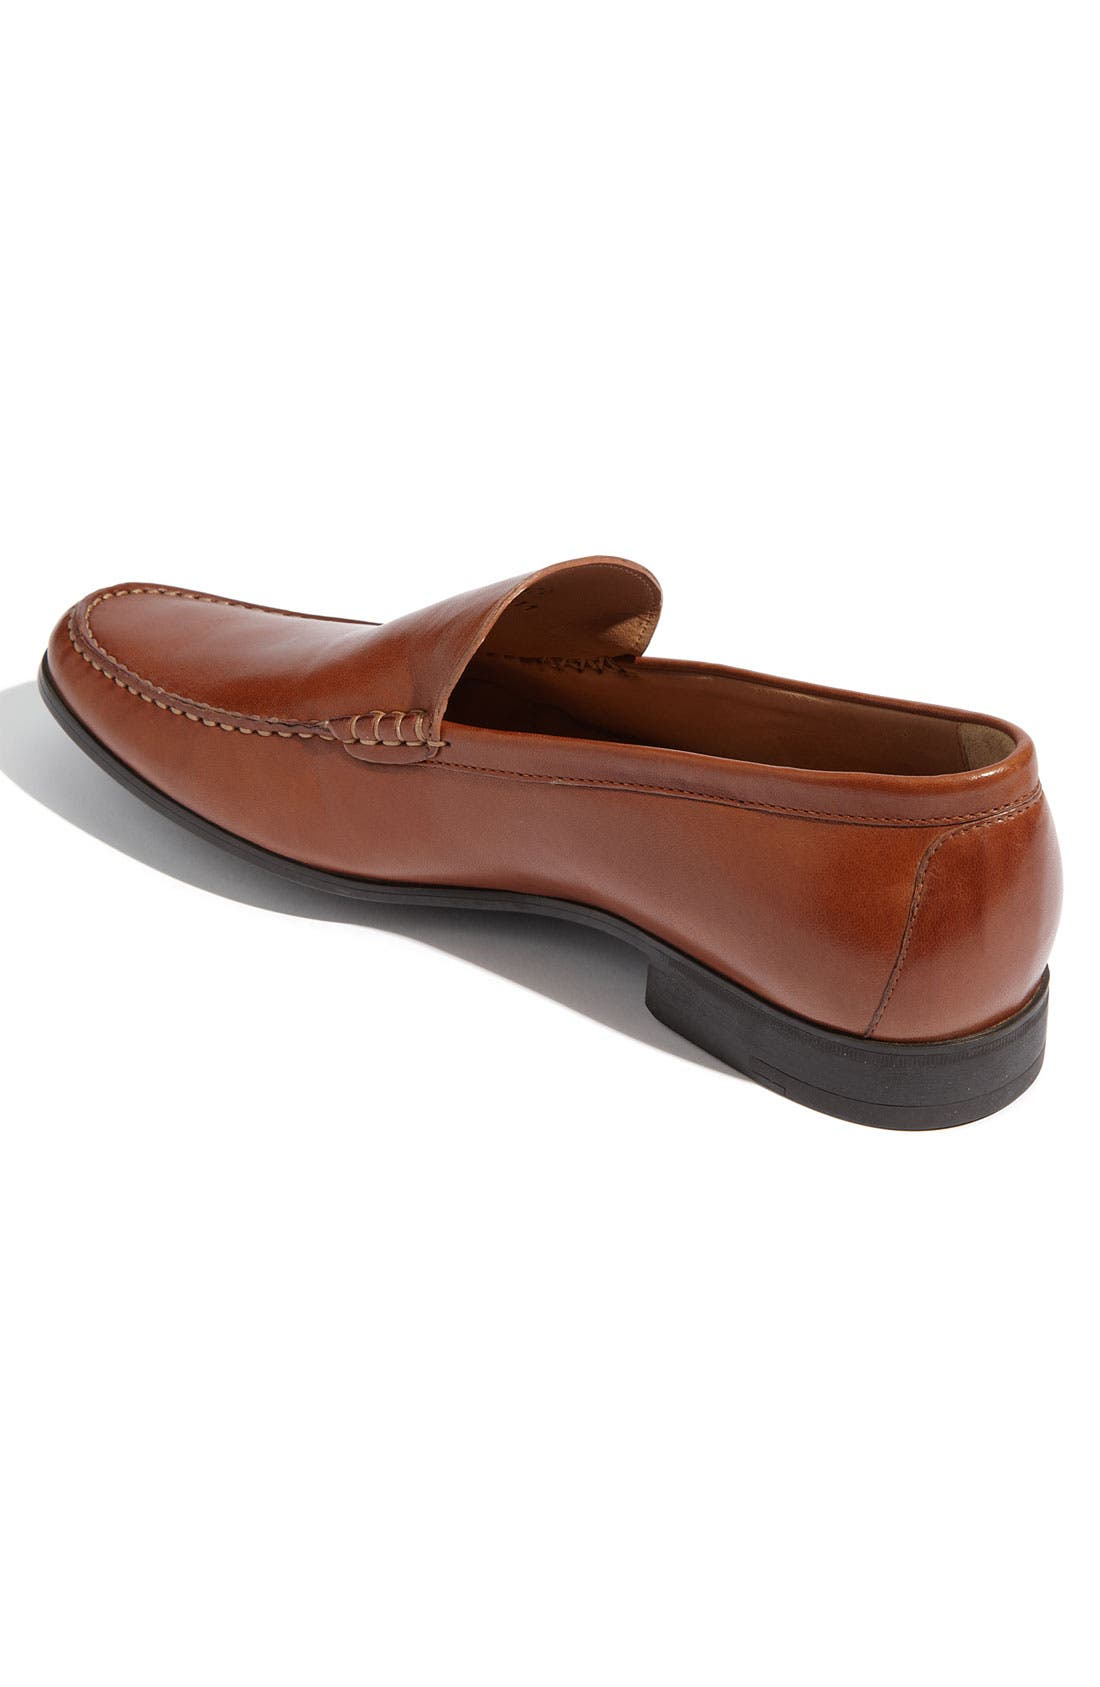 'Creswell' Venetian Slip-On,                             Alternate thumbnail 2, color,                             COGNAC